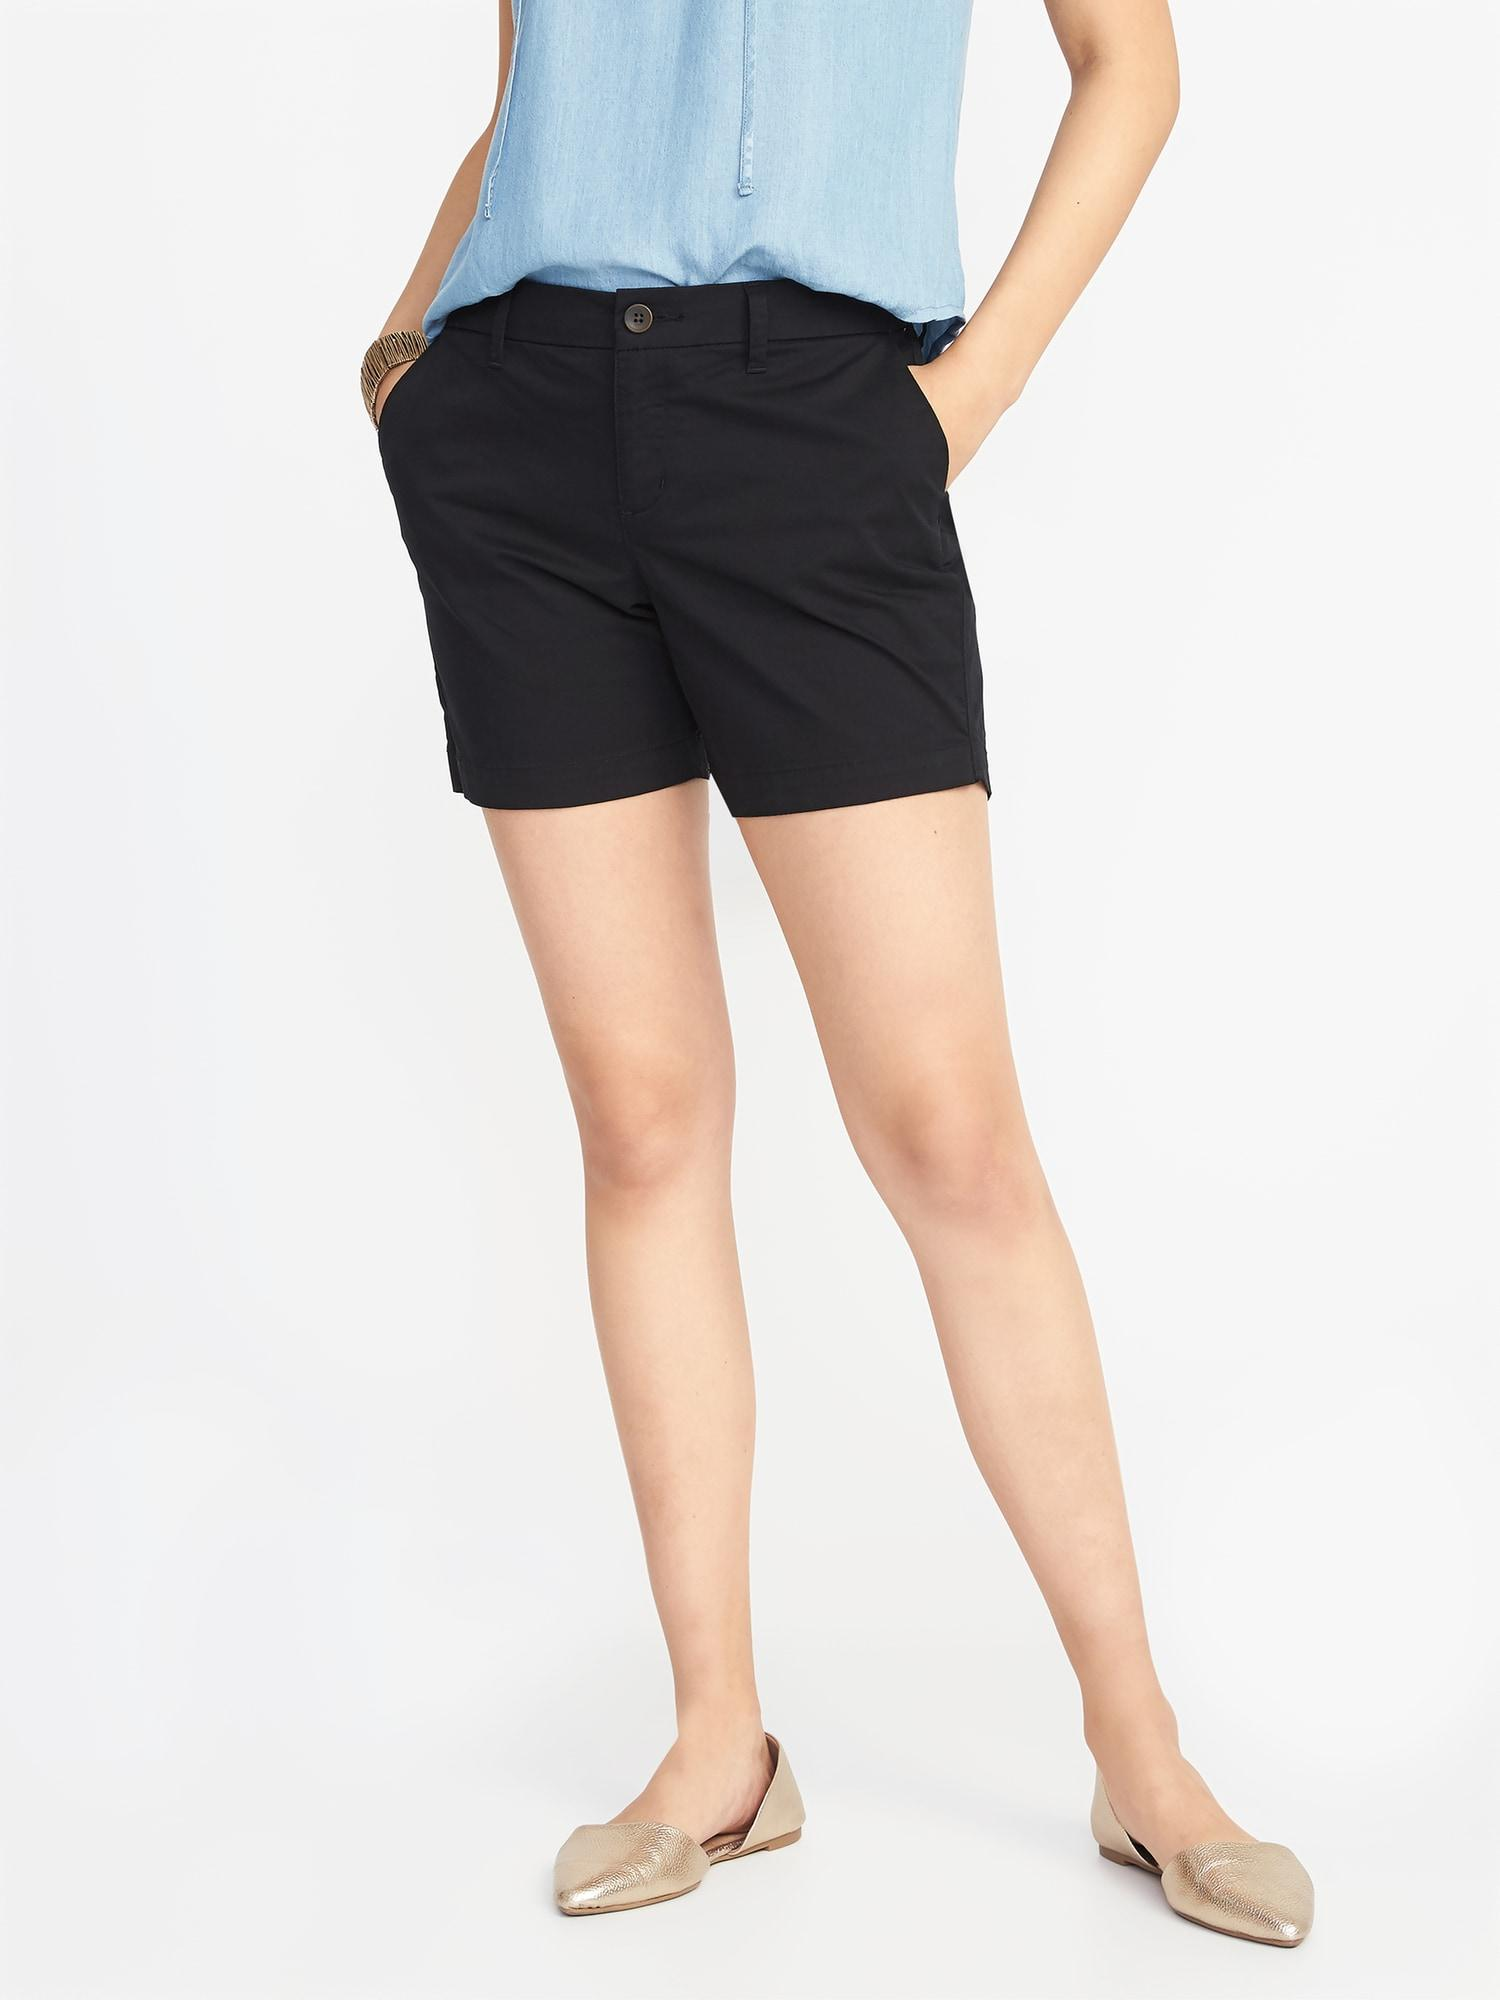 72183f1295 Lyst - Old Navy Mid-rise Everyday Twill Shorts in Black